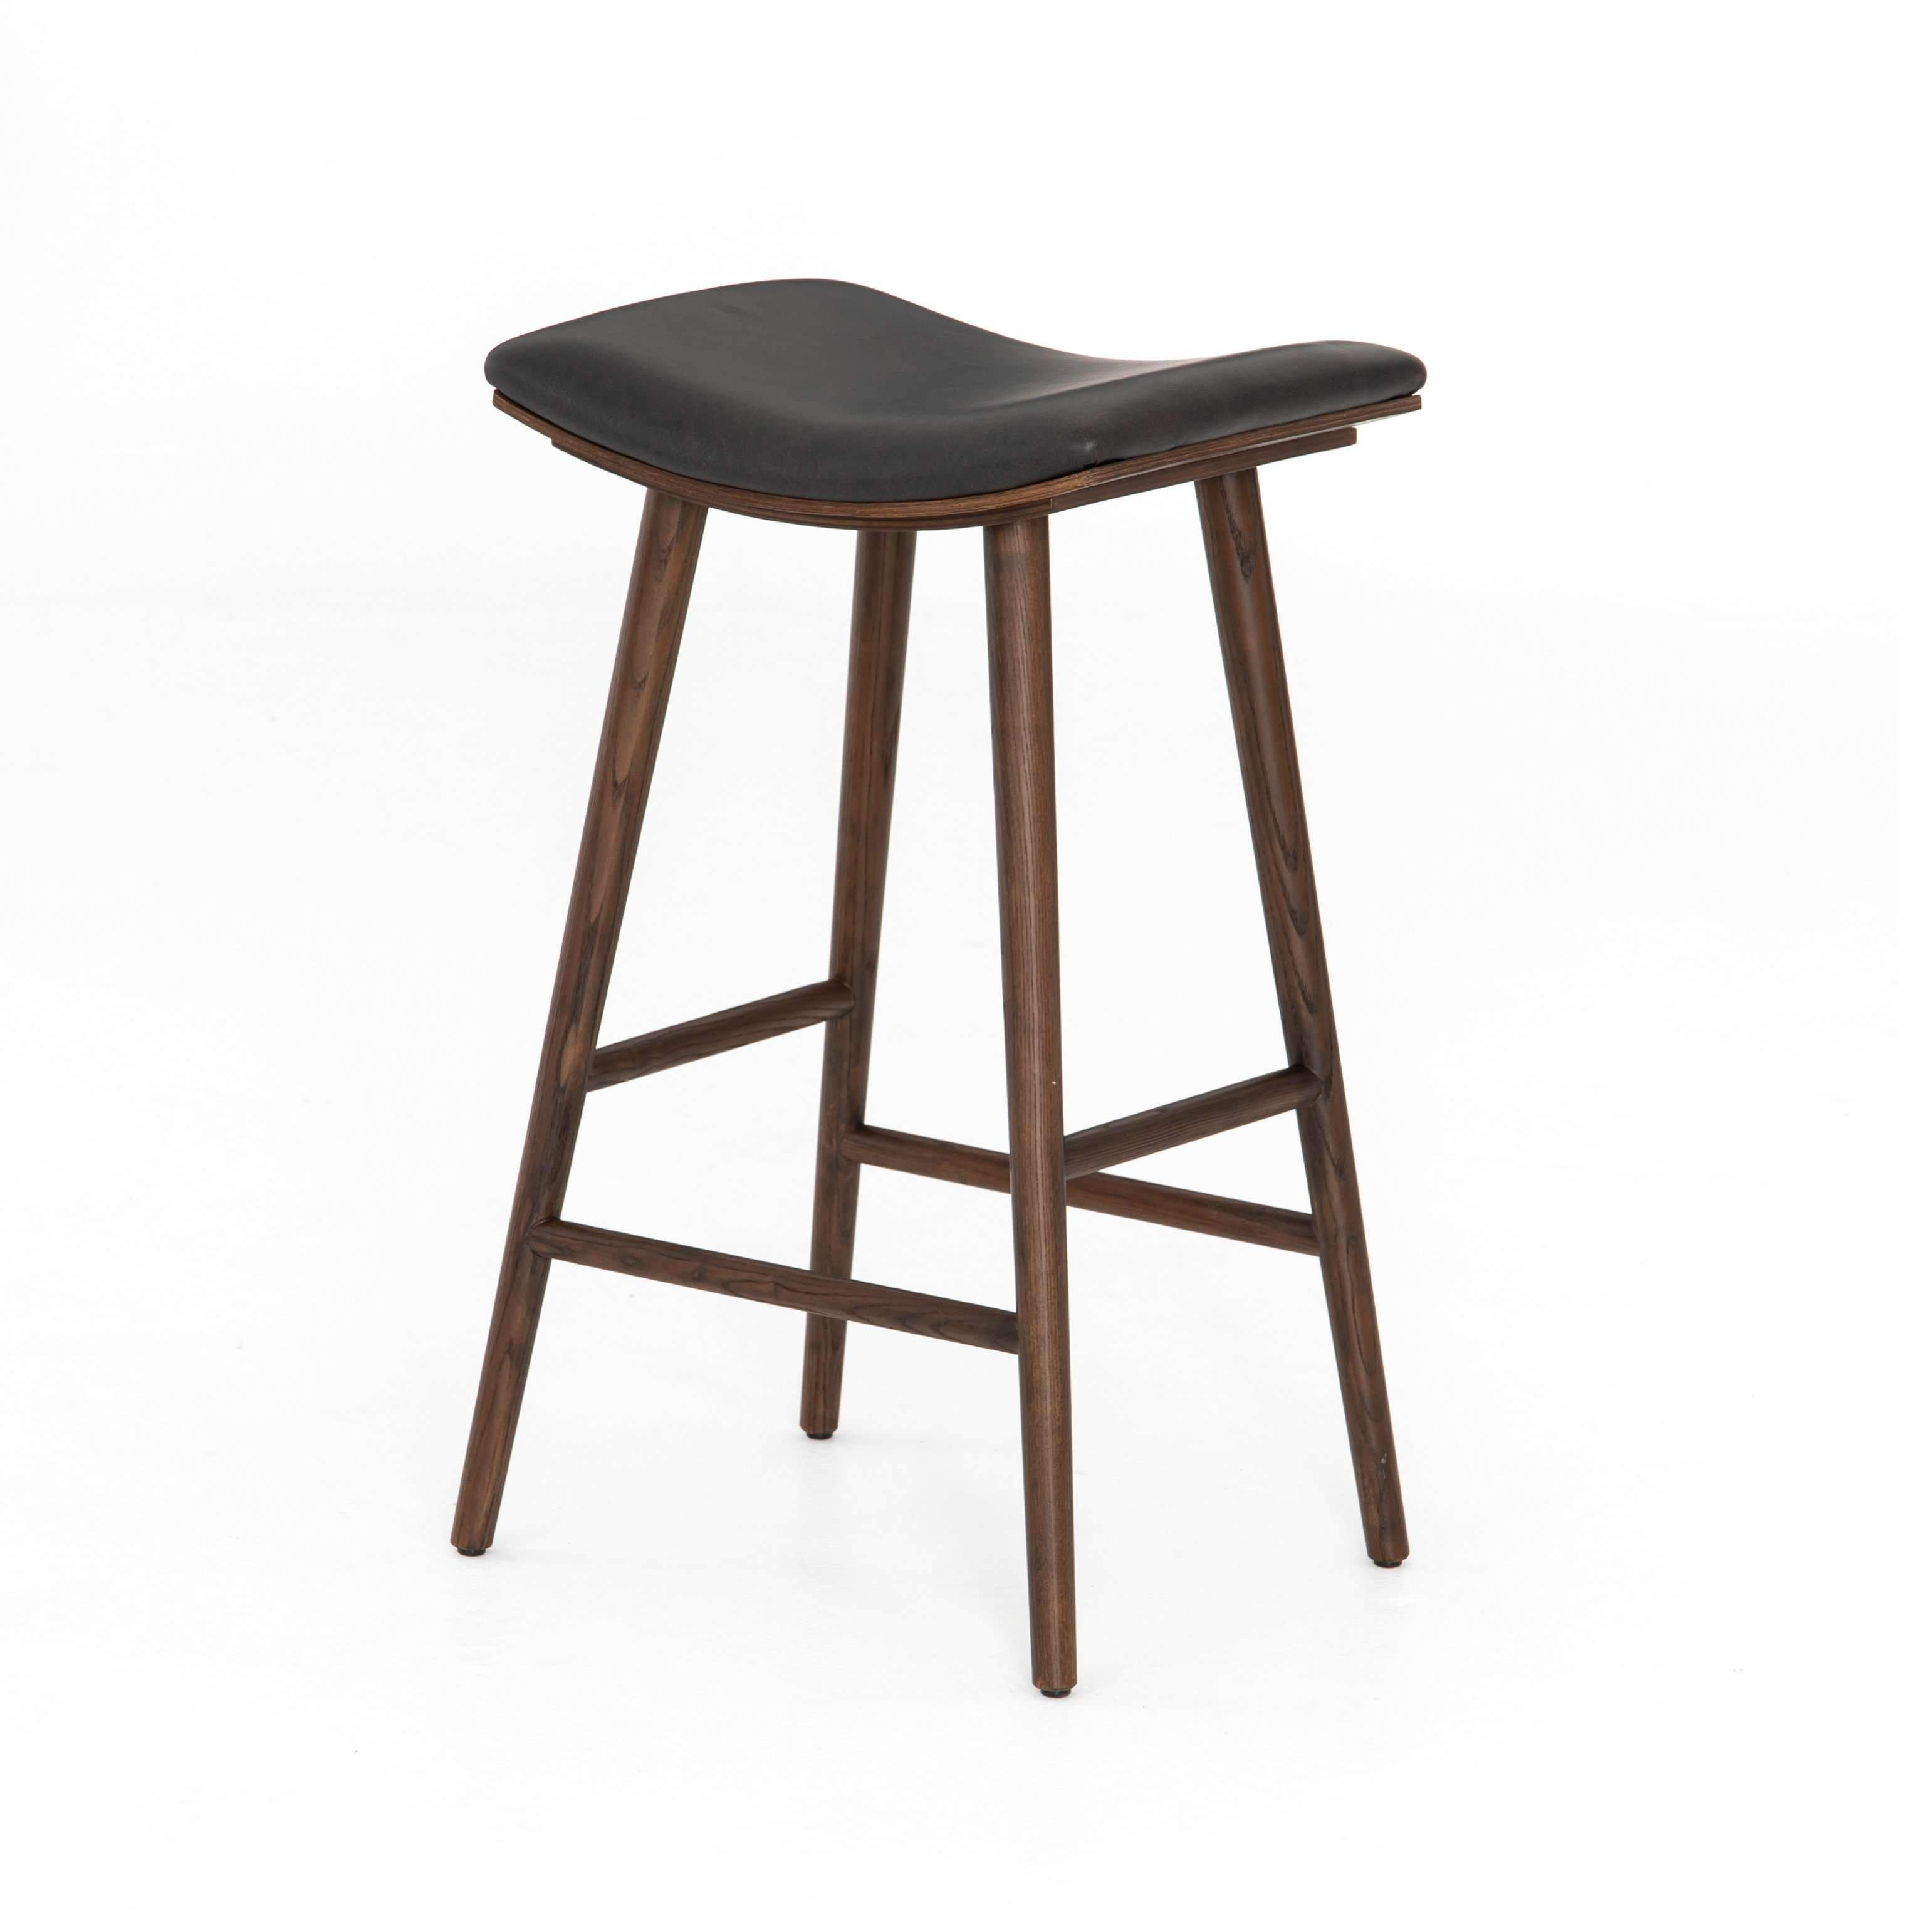 Union Saddle Bar Stool Distressed Black With Images Saddle Bar Stools Counter Stools Bar Stools